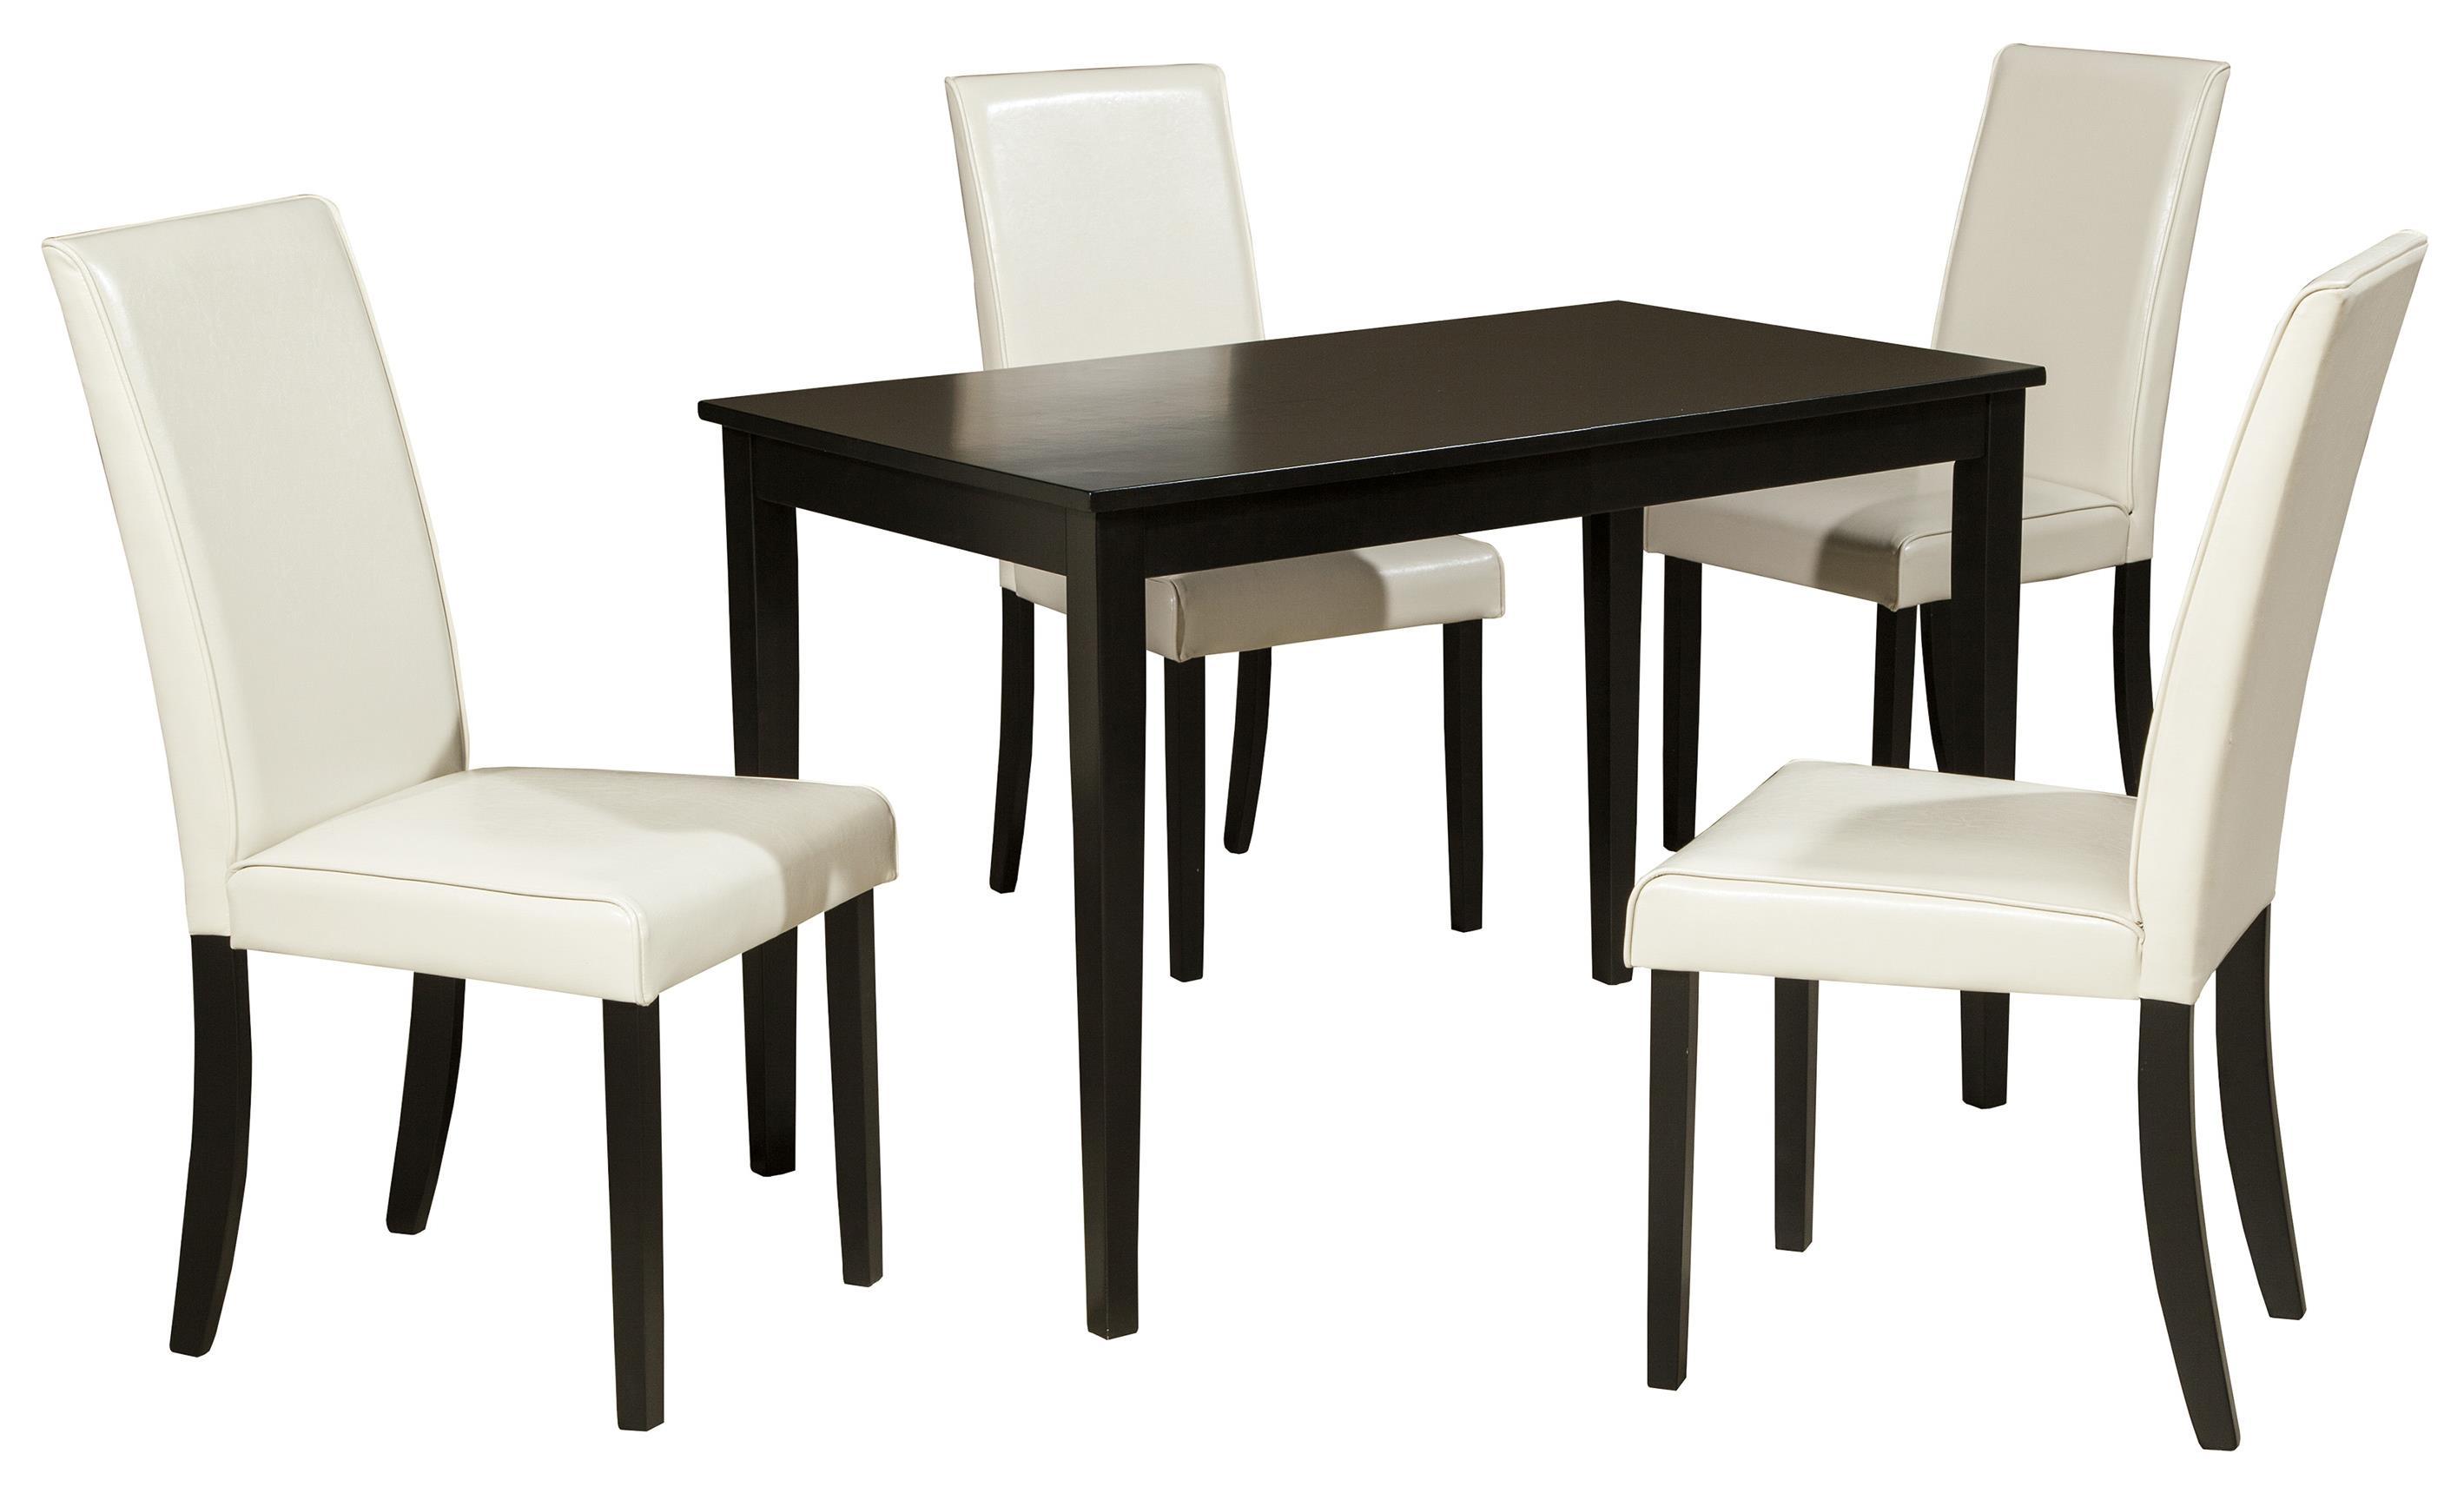 Contemporary Rectangular Dining Room Table By Signature Design By Ashley Wolf And Gardiner